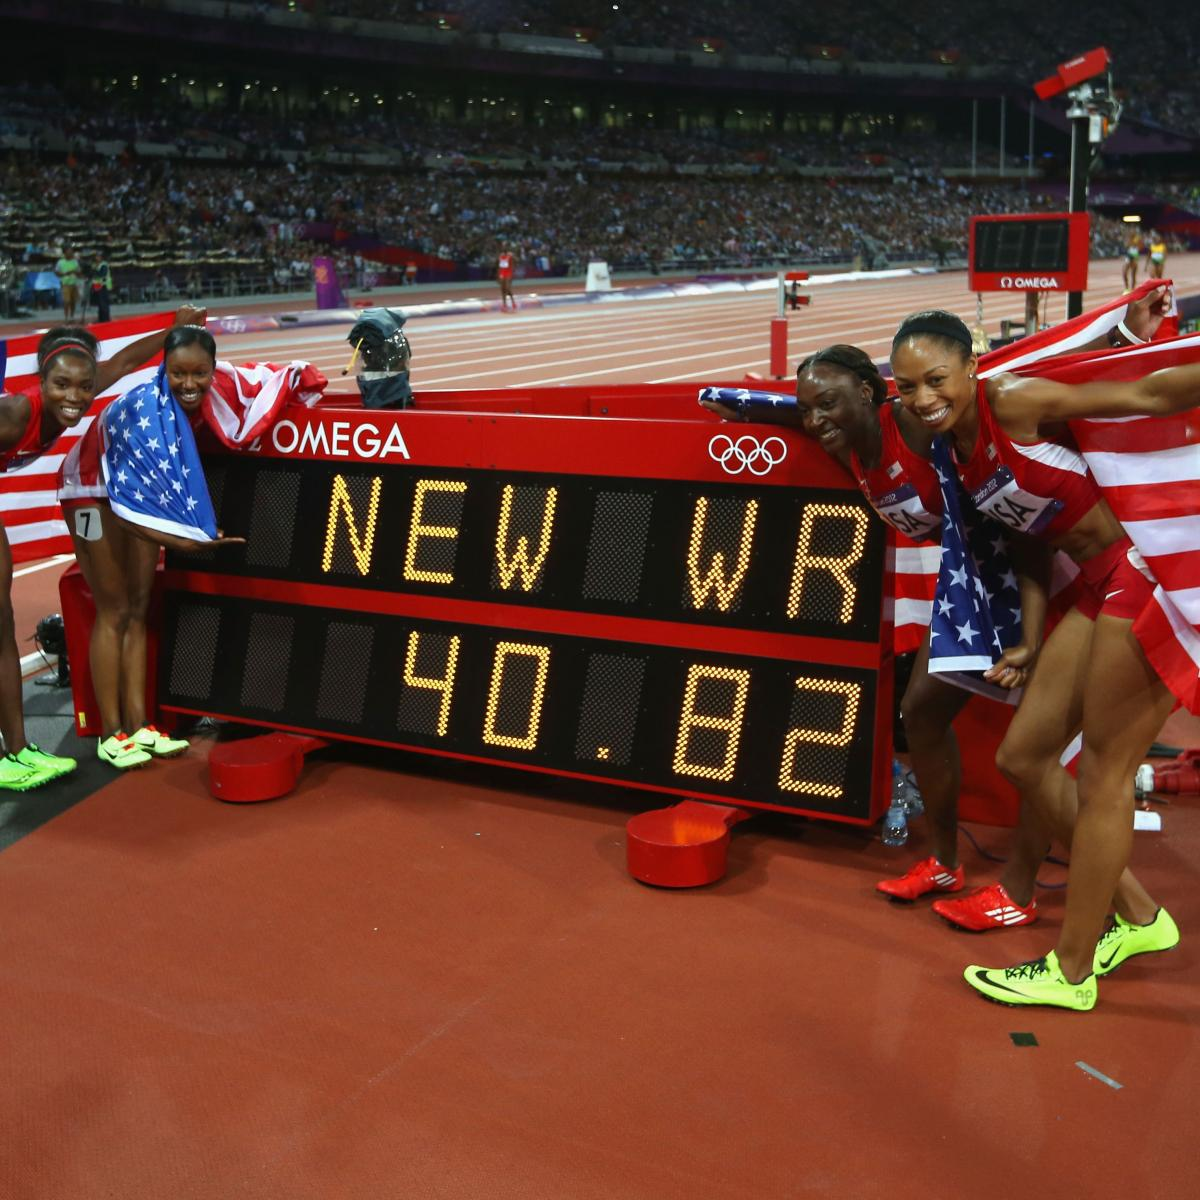 2012 Olympics: The 25 World Records Of The London Games